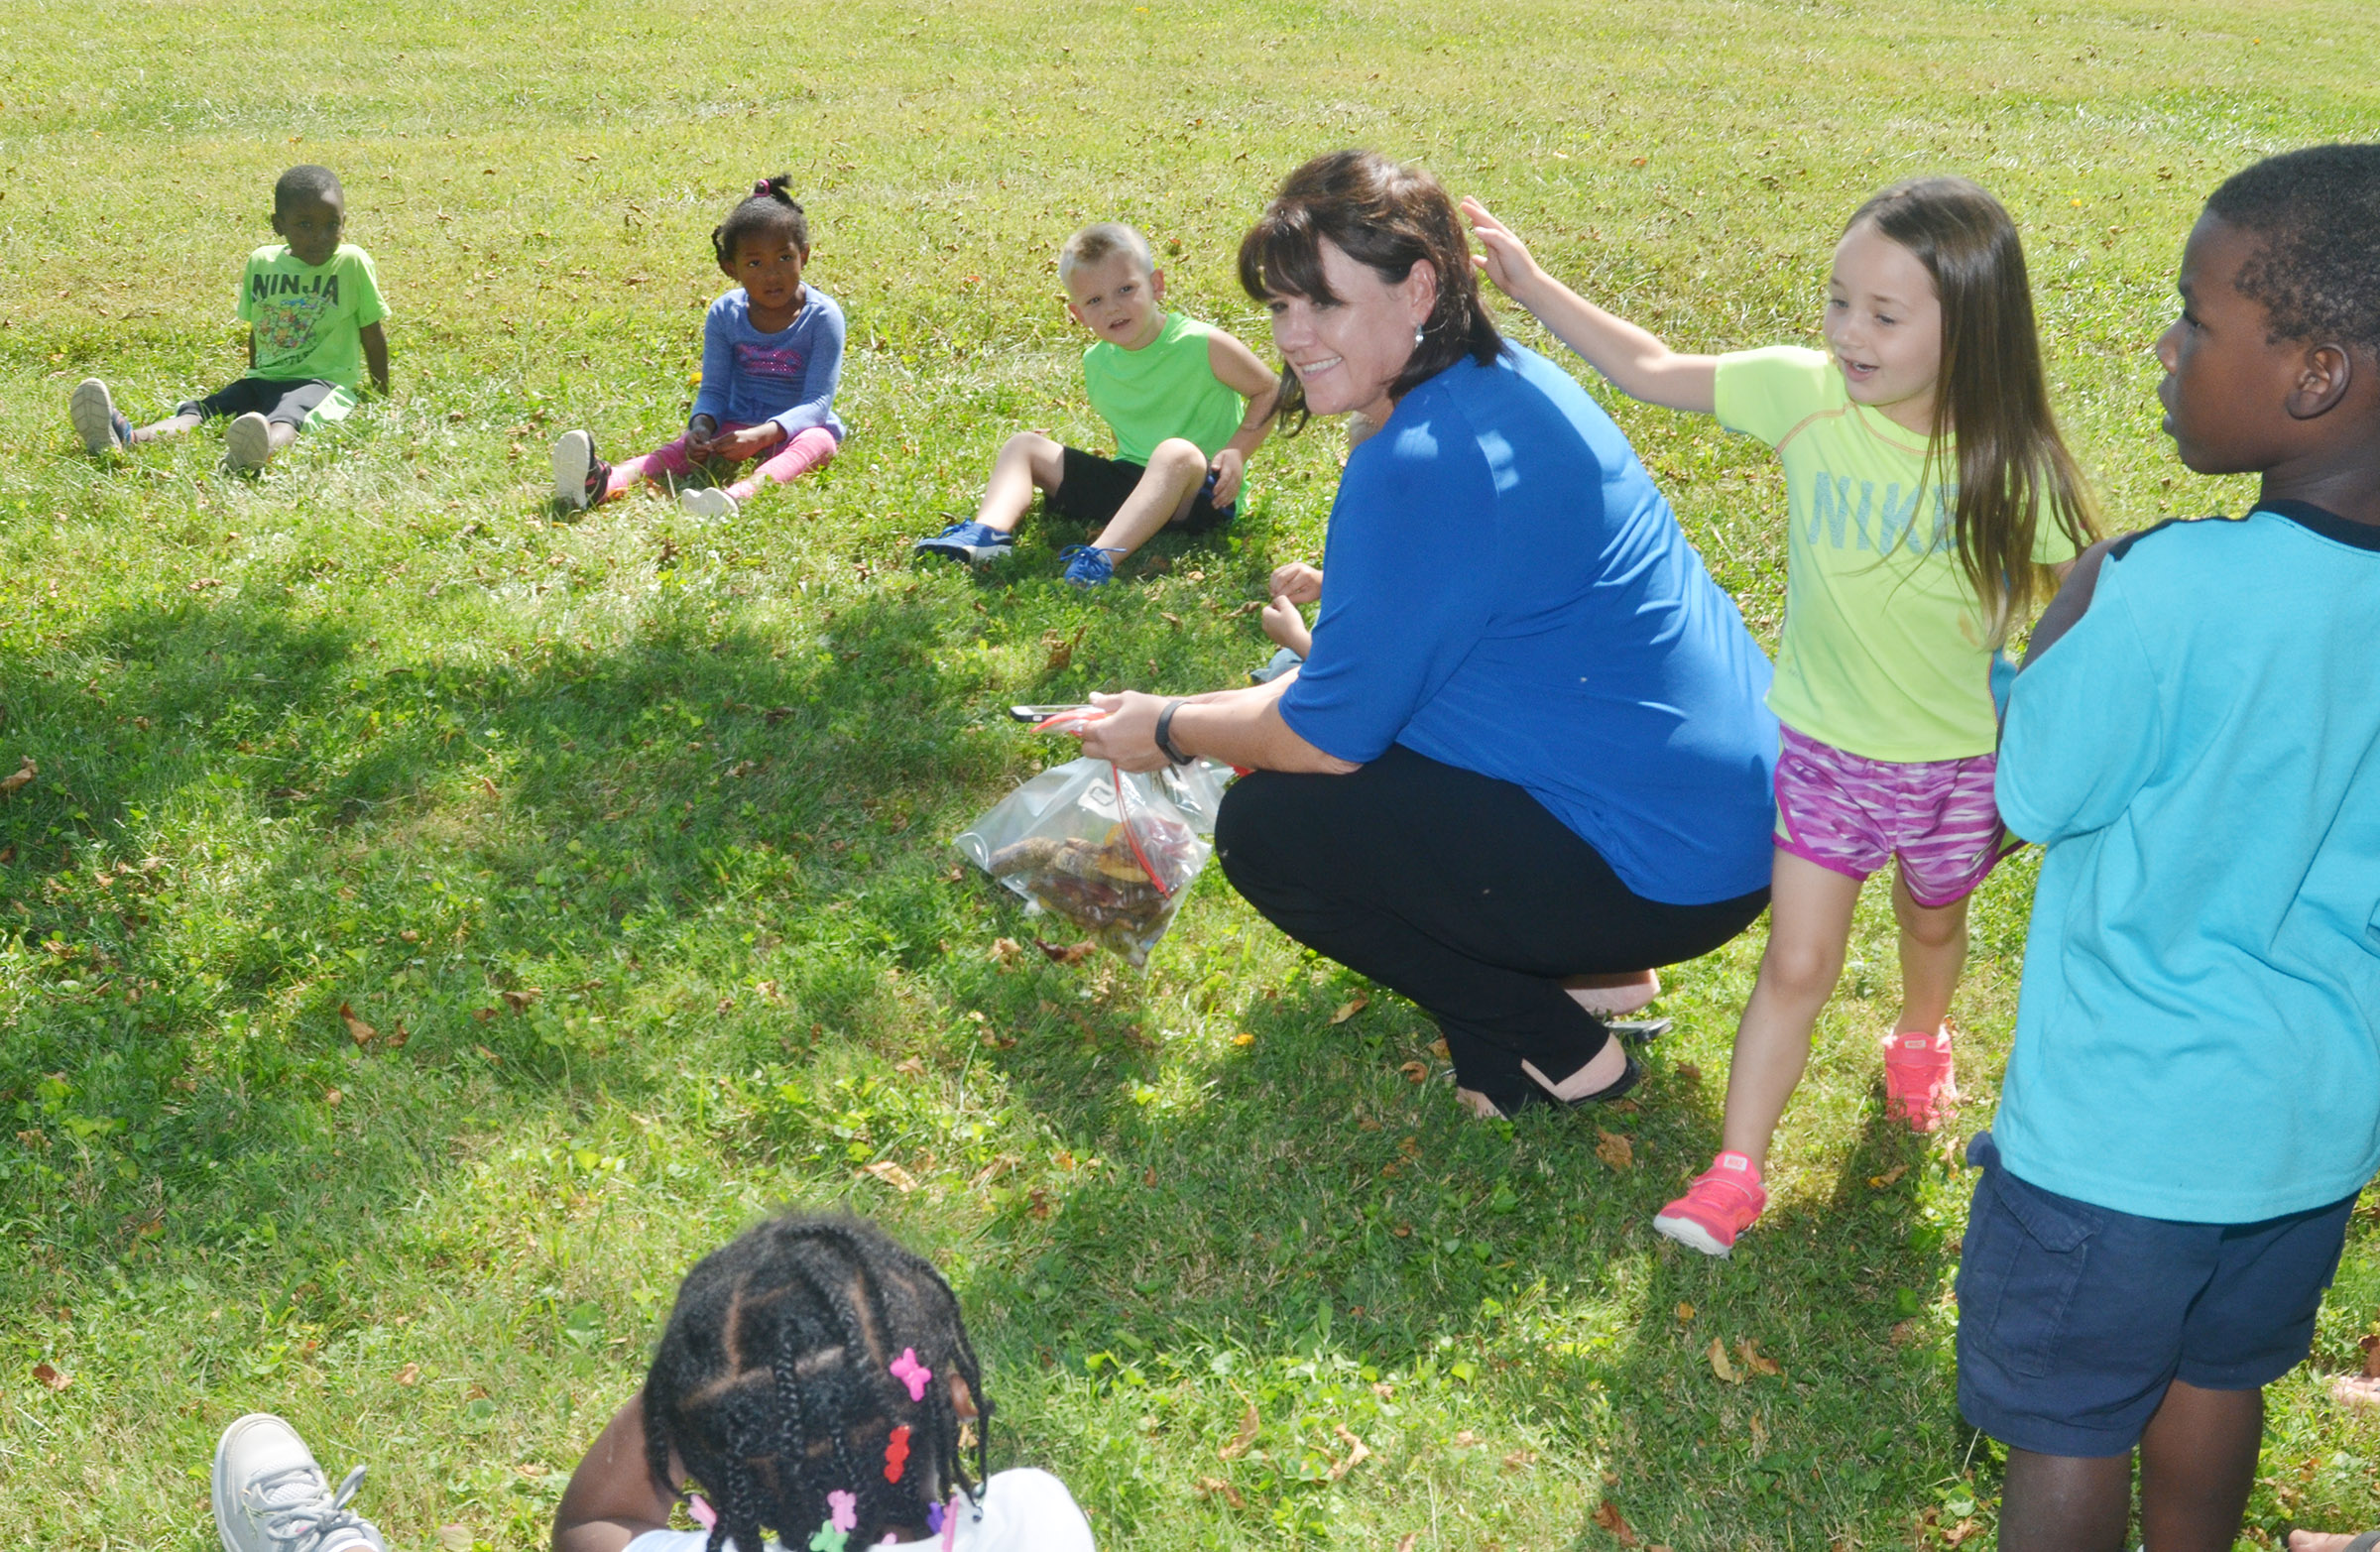 CES preschool student Lylah Davis plays Duck, Duck, Goose with her teacher Denise Spencer and her classmates.